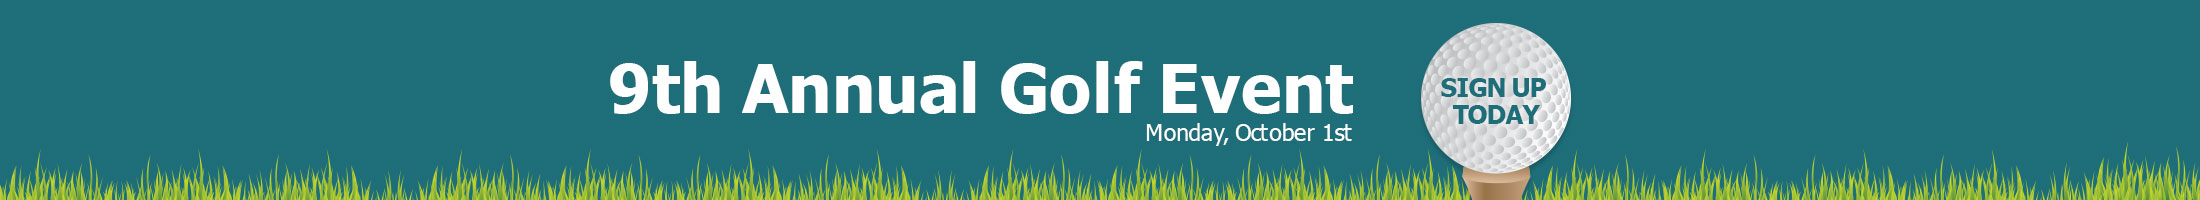 golf event on october 1st